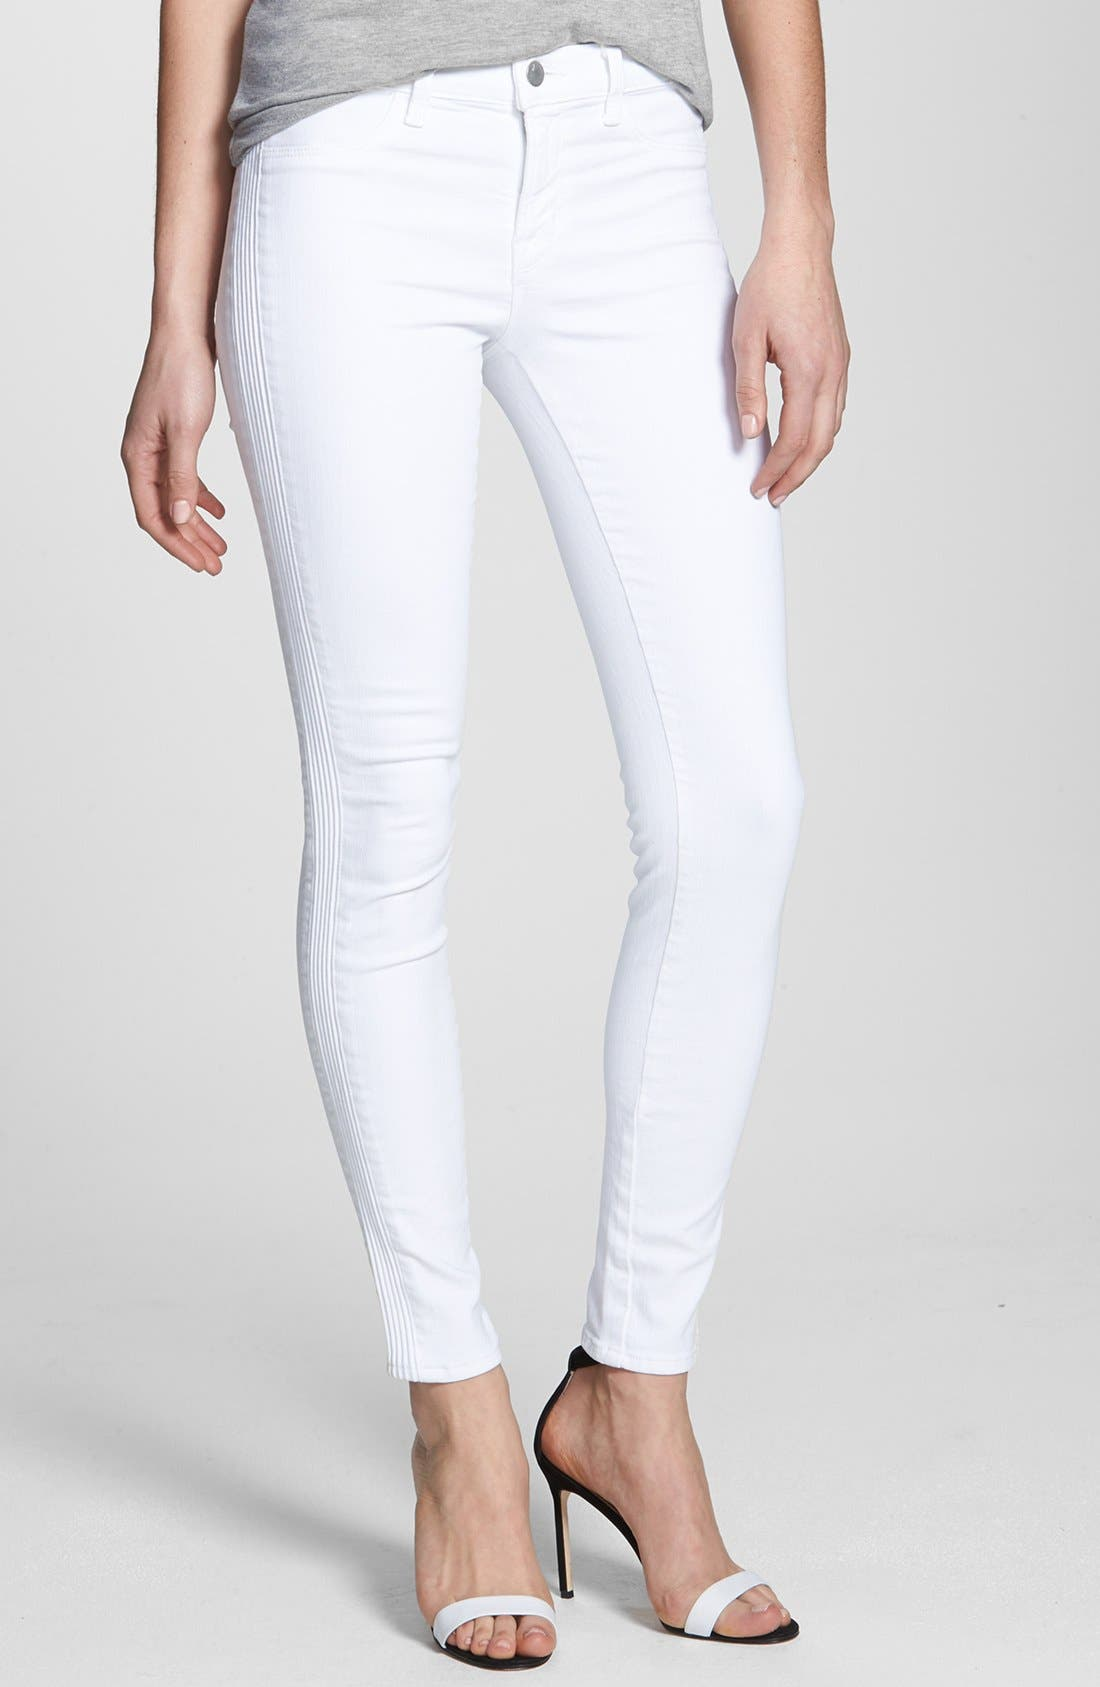 Main Image - J Brand Mid Rise Skinny Jeans (Blanc)